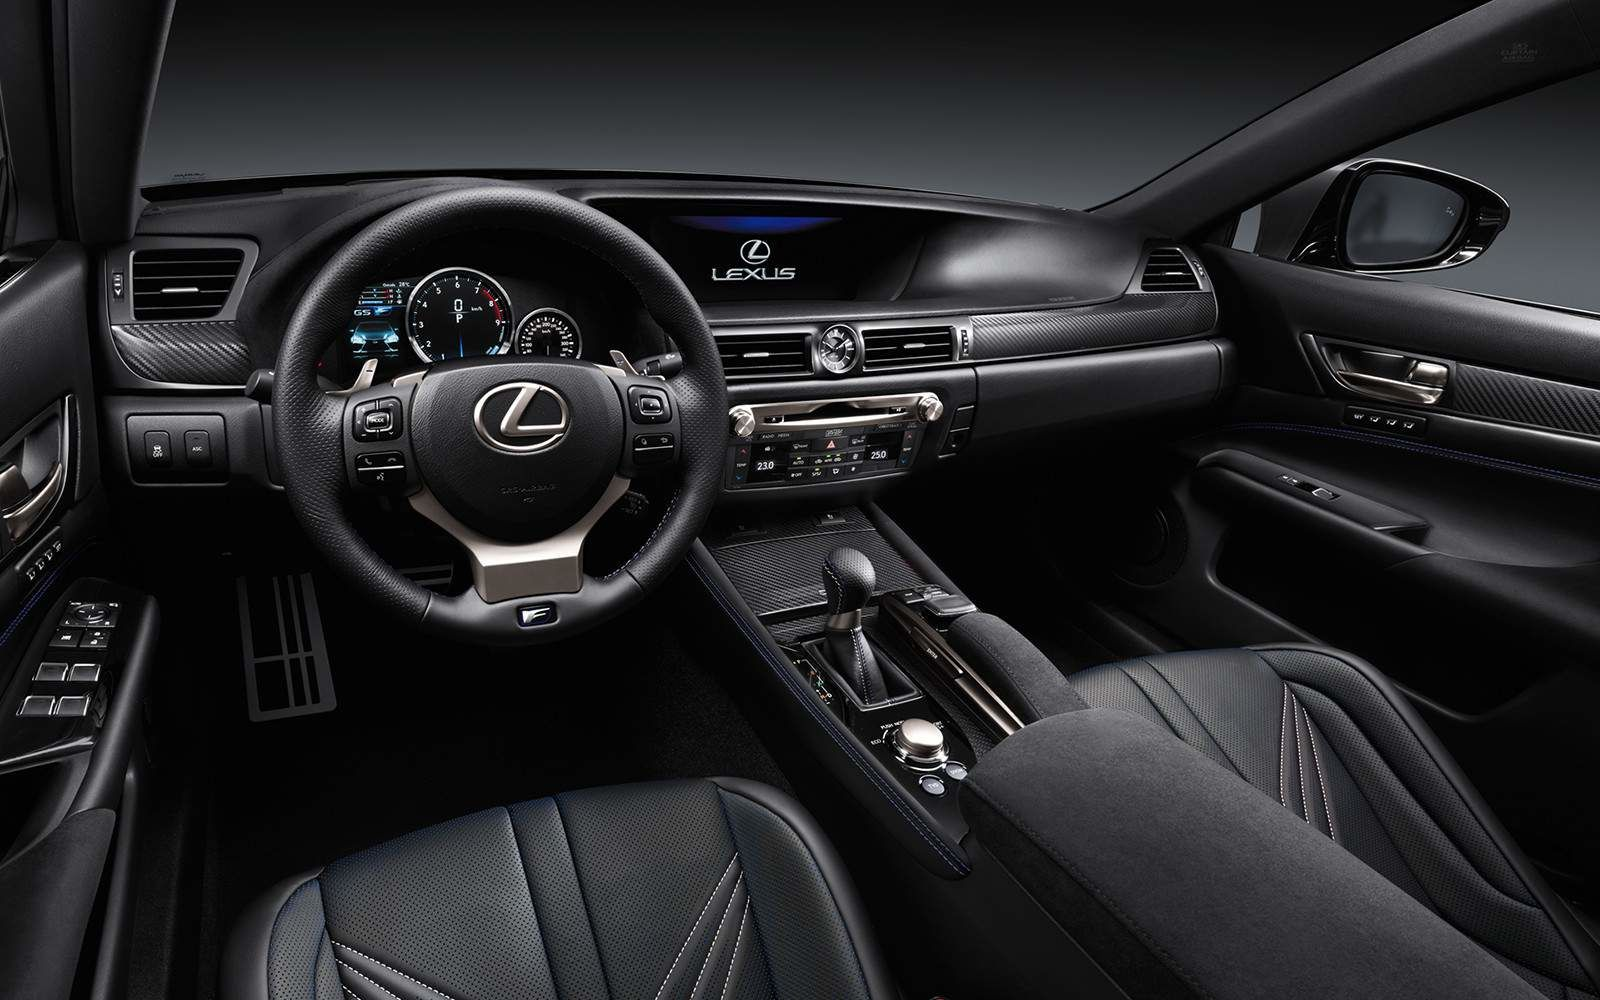 Lexus 2020 Gsf Interior Black Leather L